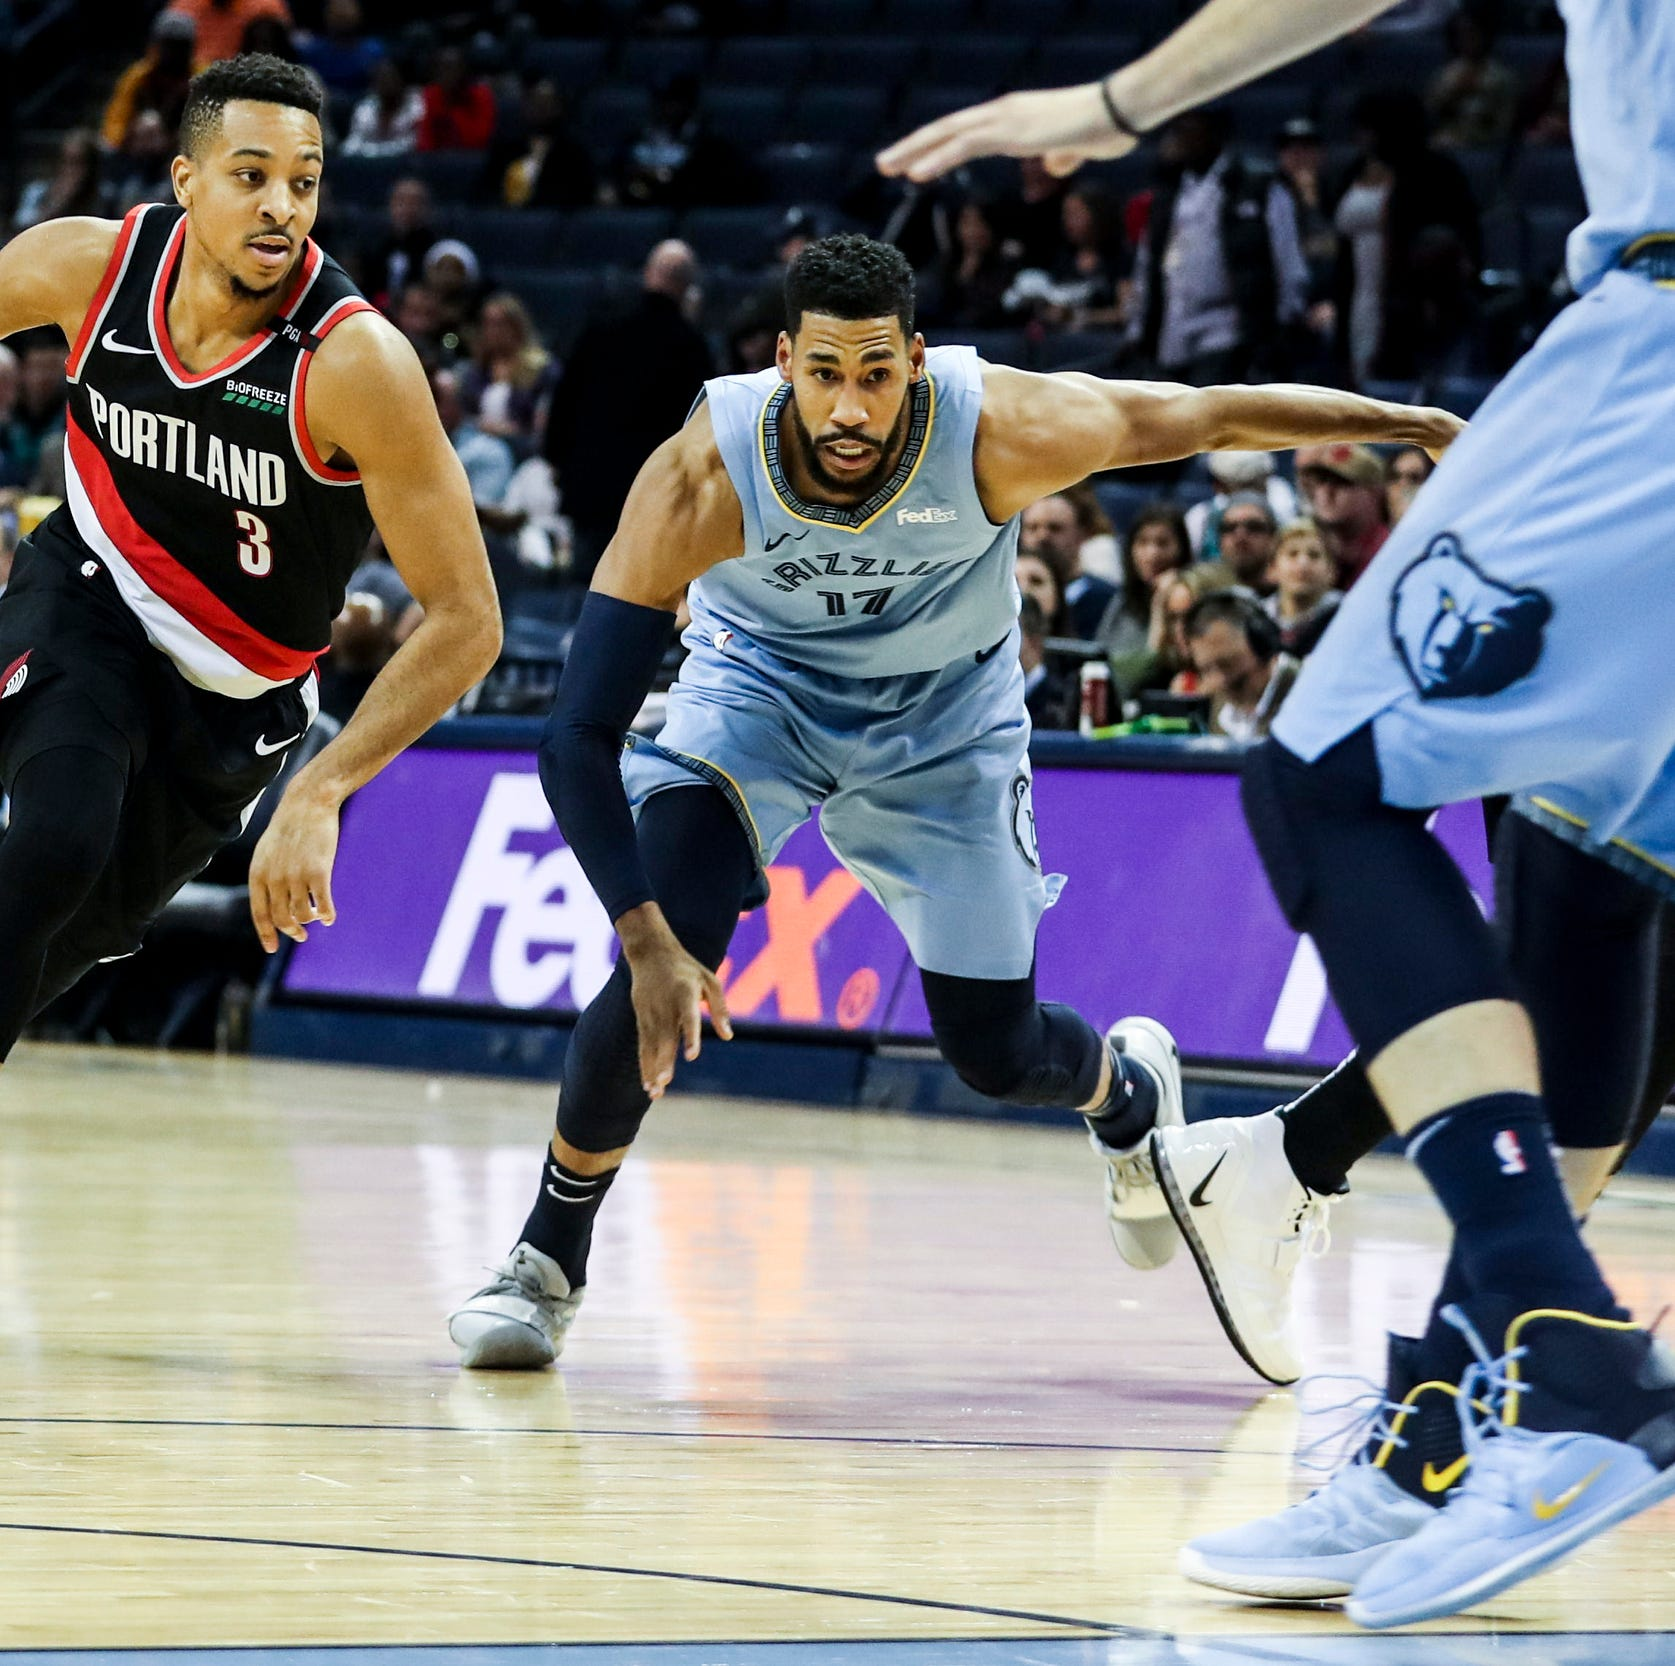 Grizzlies drag Portland into mud for a 92-83 win